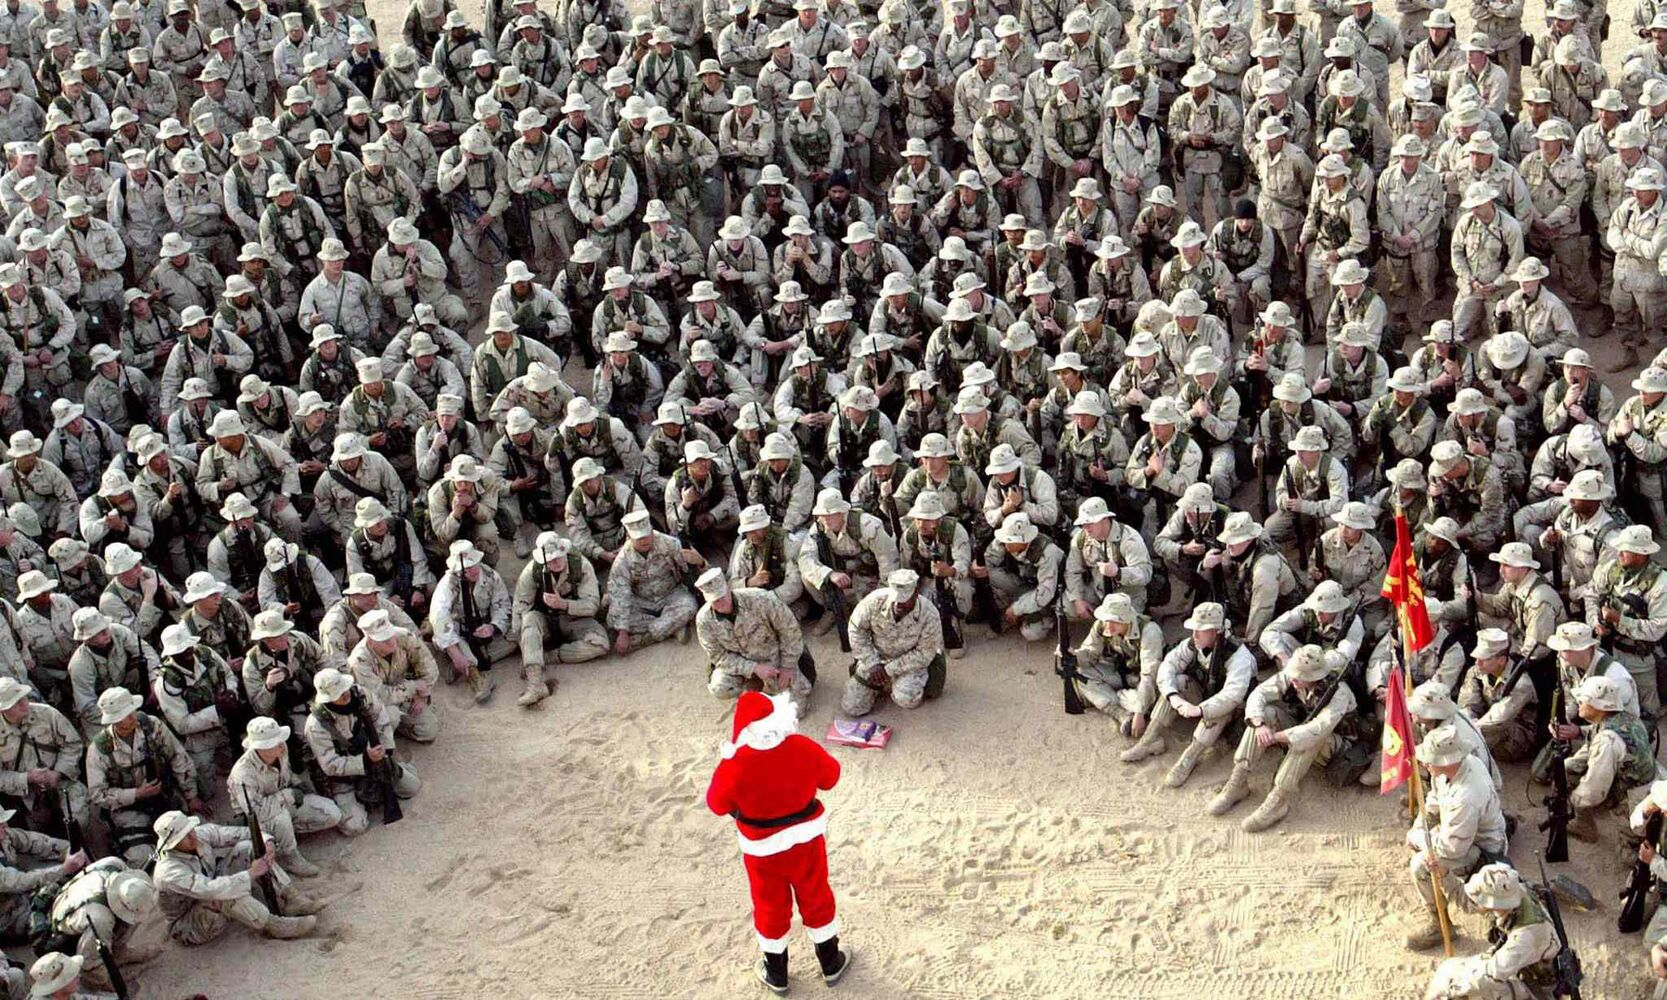 Dec. 24, 2002:  Hundreds of U.S. Marines gather at Camp Commando in the Kuwait desert during a Christmas Eve visit by Santa Claus.